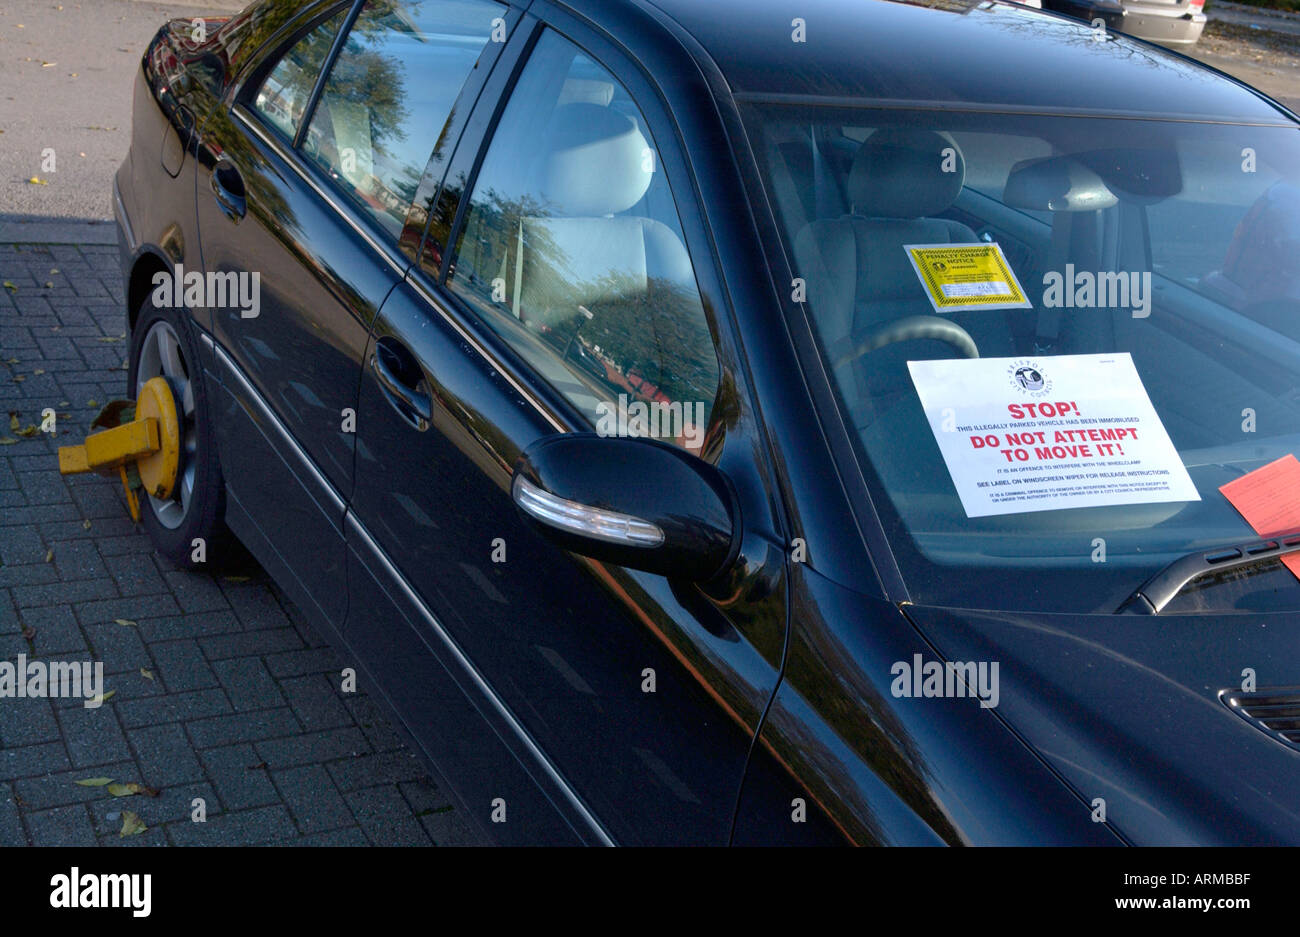 Car parking stickers design india - Illegally Parked Car With Parking Ticket Sticker And Penalty Notice On Windscreen Uk Stock Image